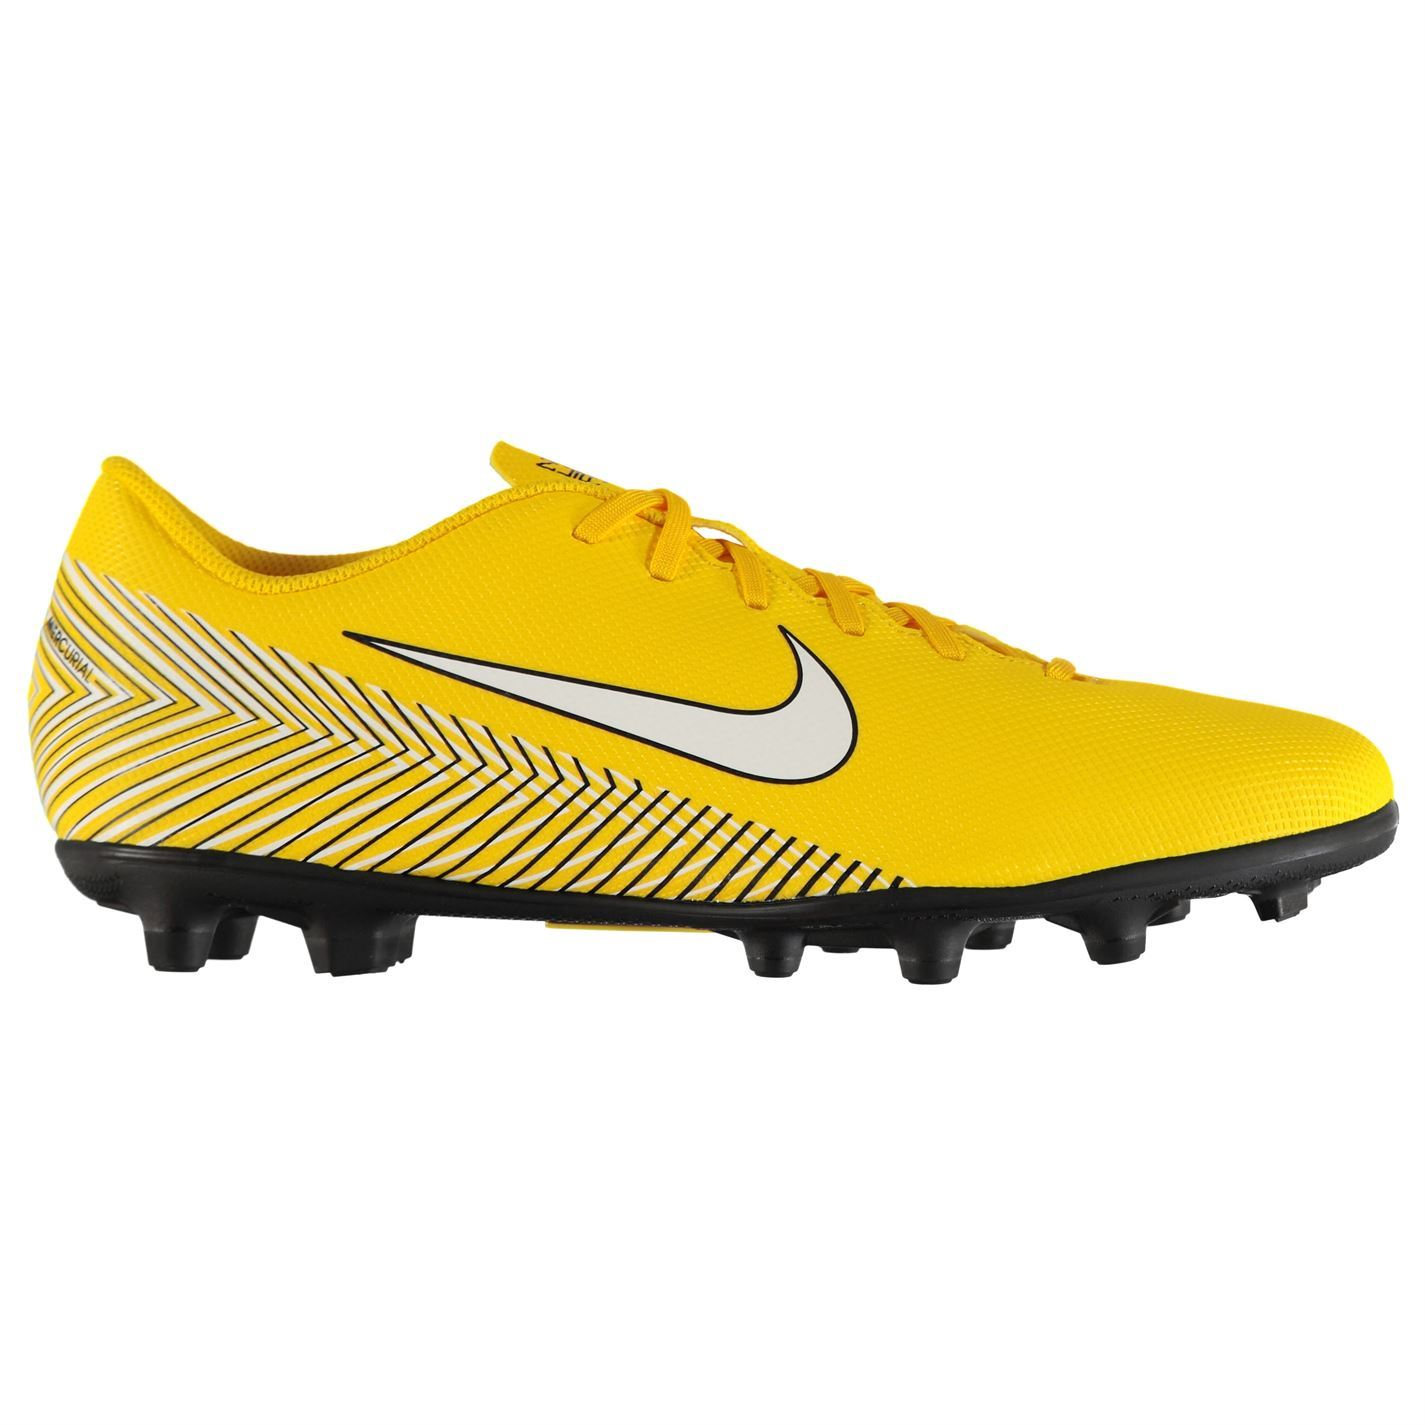 594f586a1ba6 ... Nike Mercurial Vapor Club Neymar FG Football Boots Mens Yellow Soccer  Cleats ...